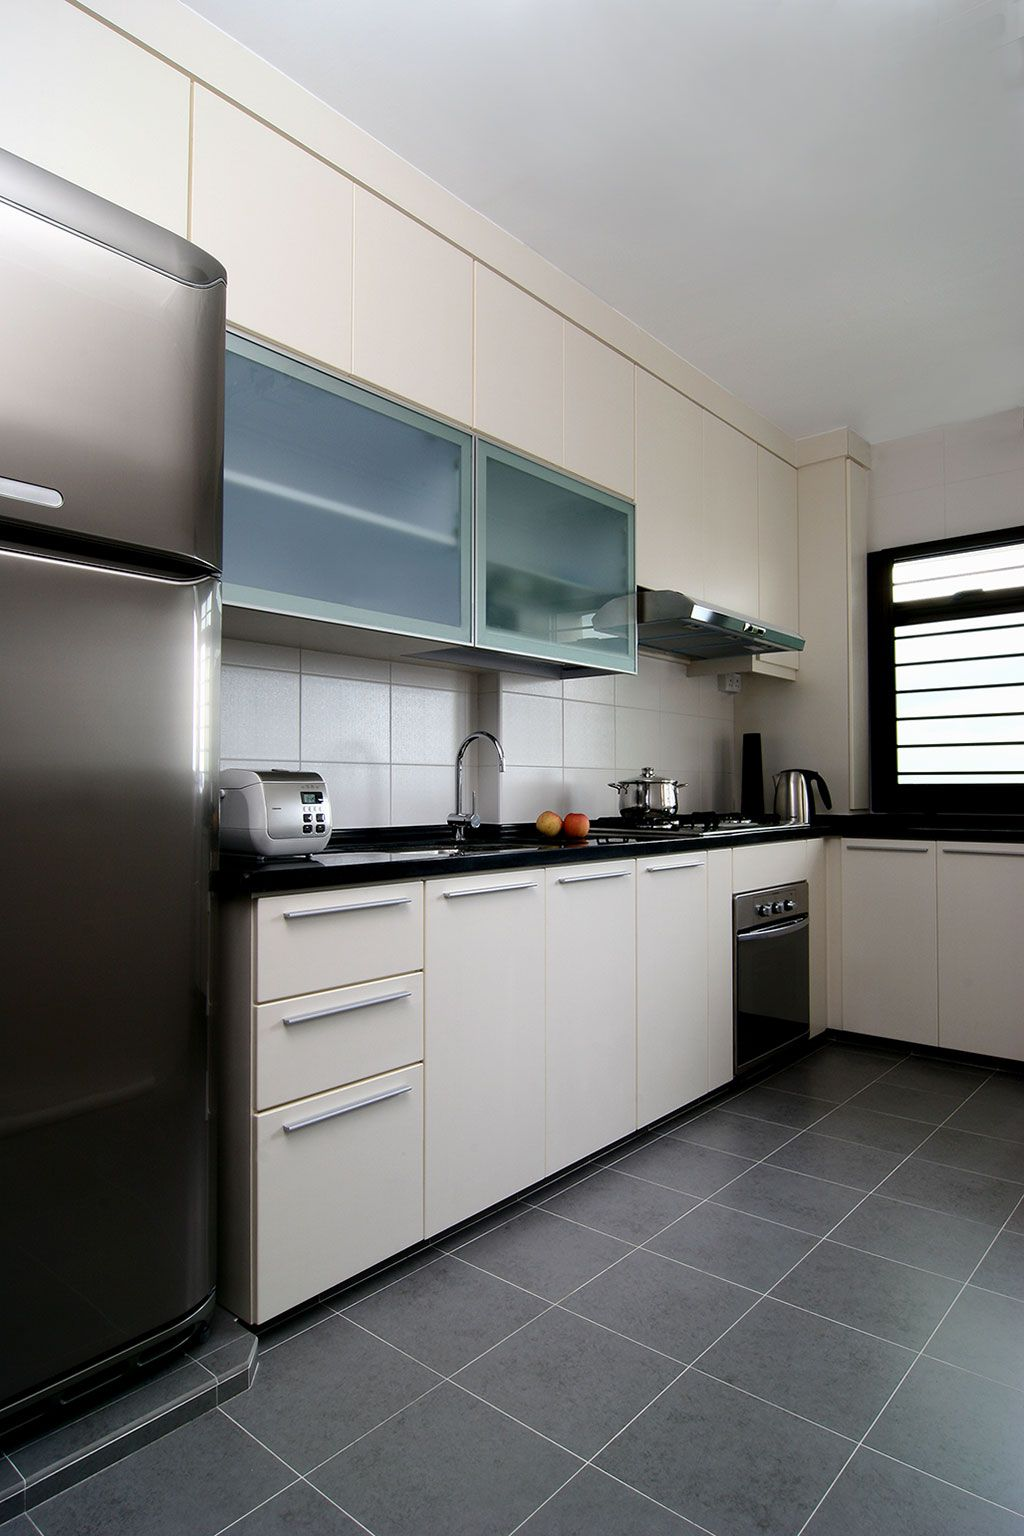 kitchen design in flats. stirling hdb kitchen interior design 1 536 from Kitchen Cabinets Hdb Flats jpg 024 pixels